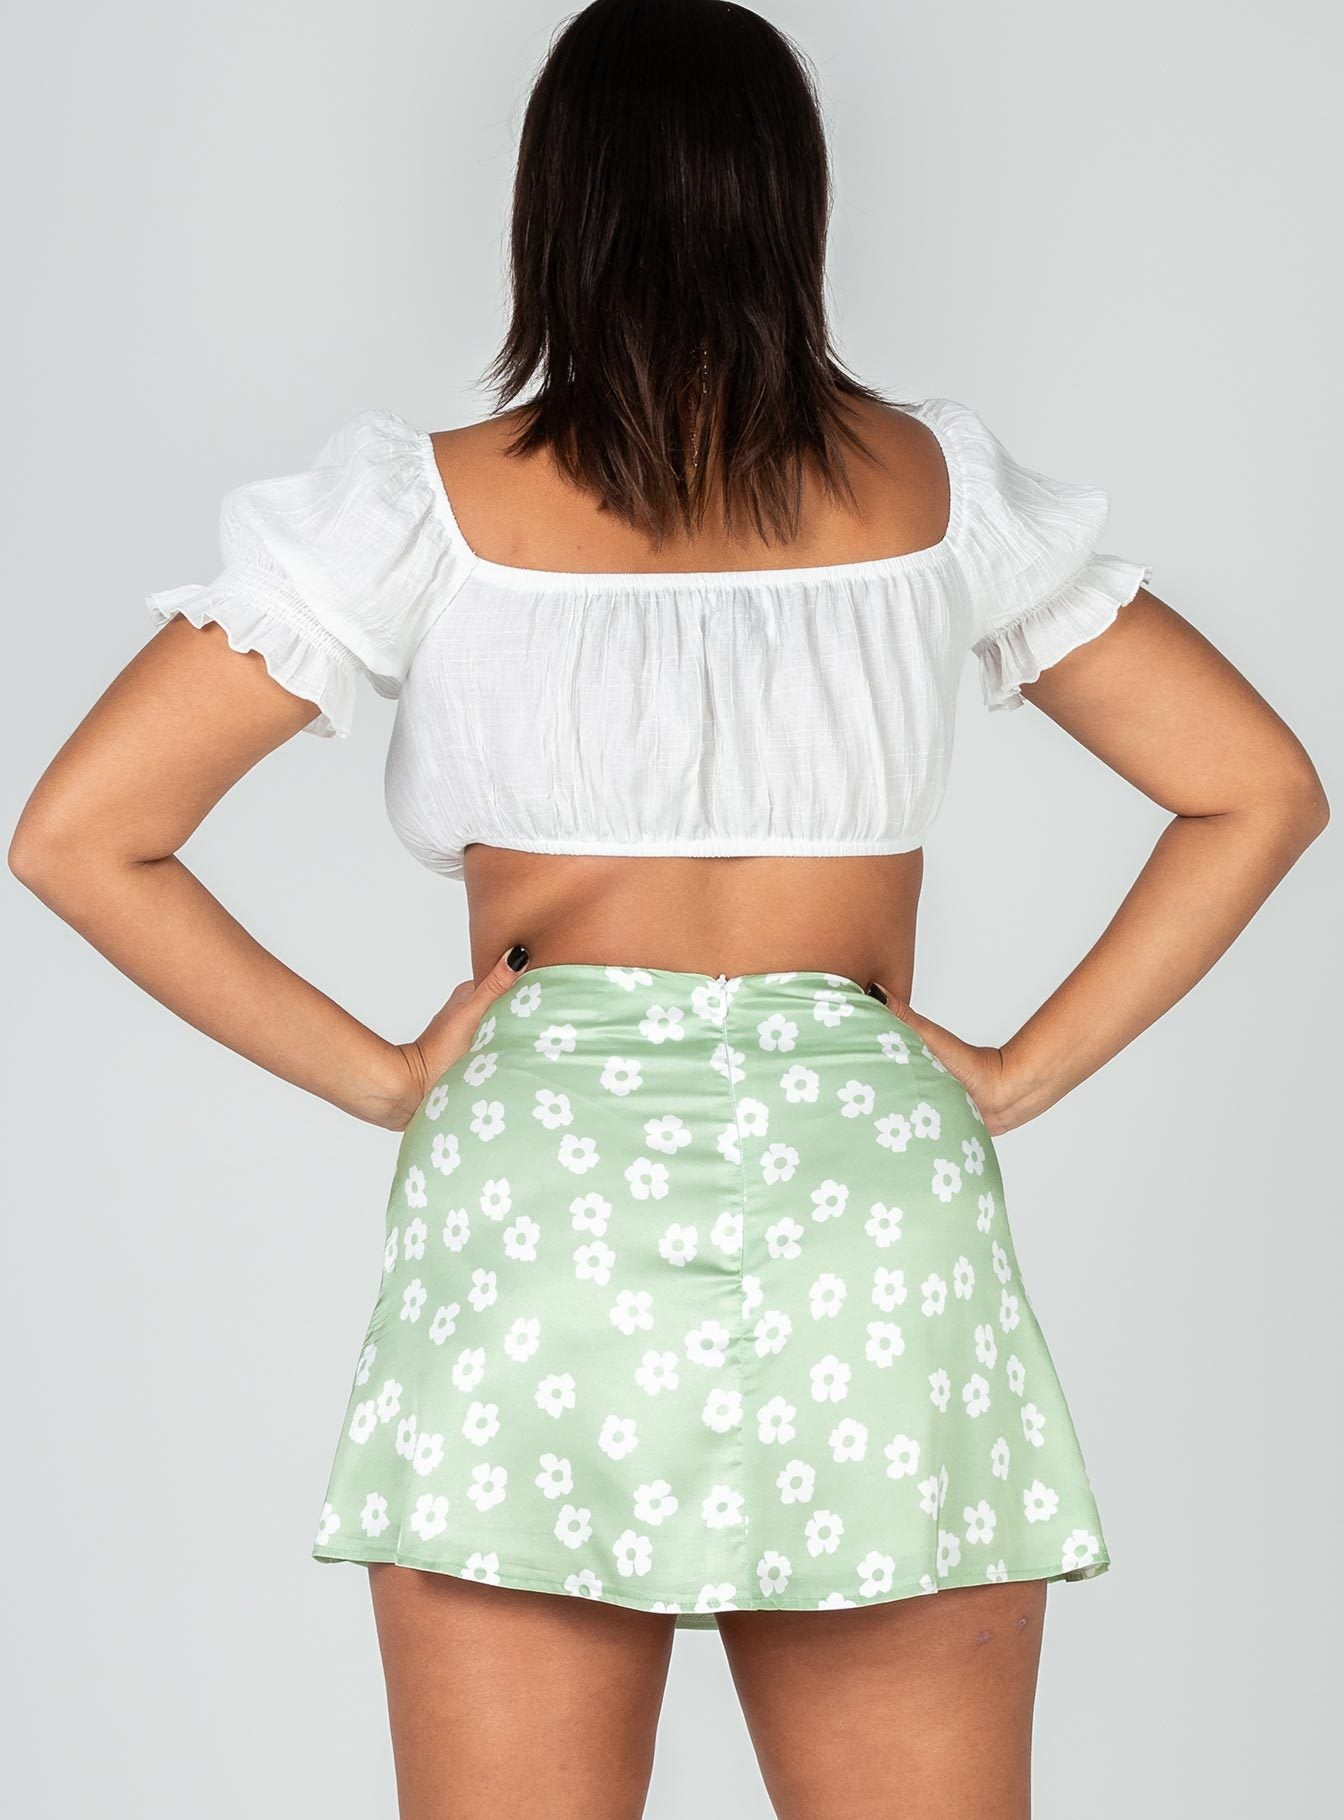 Olton Mini Skirt Green